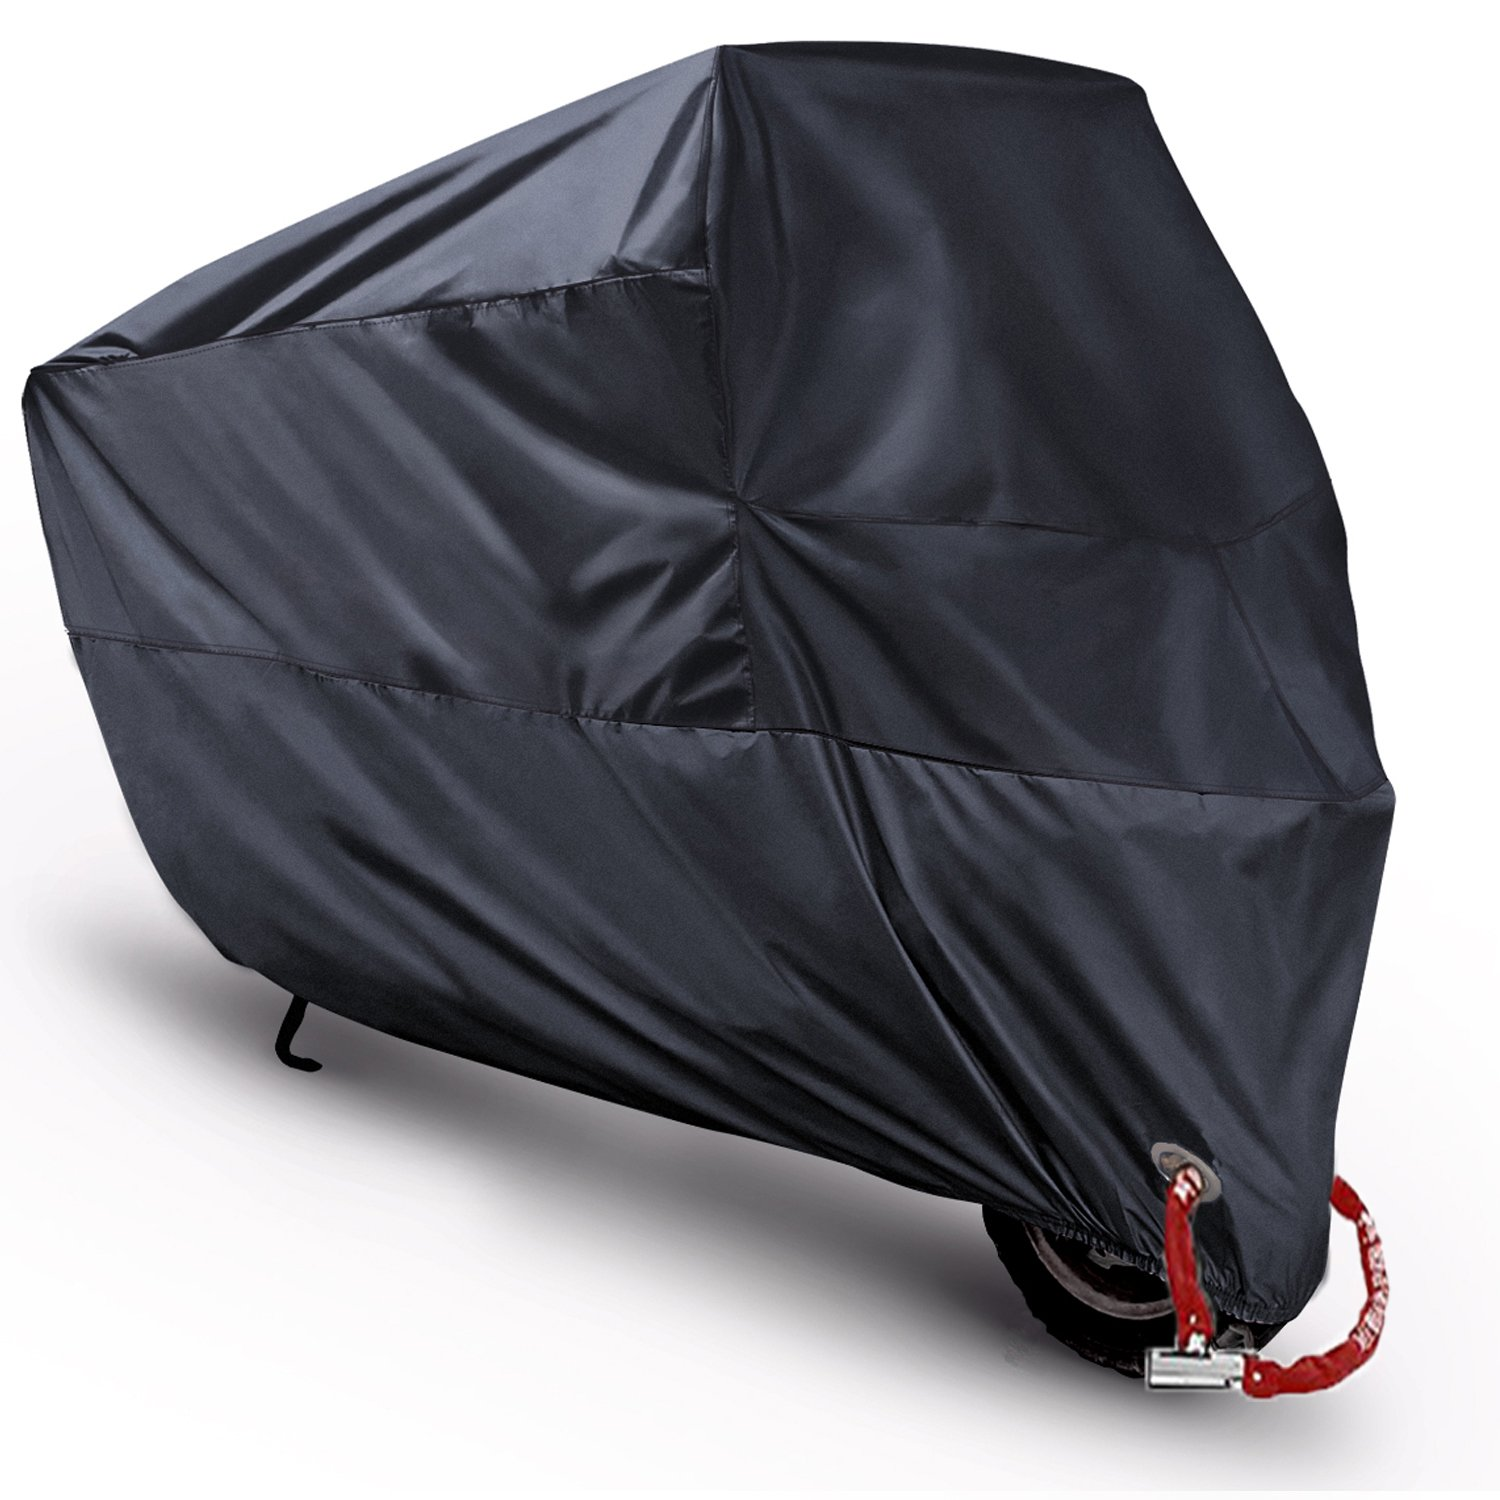 Motorcycle Cover Waterproof Motorbike Scooter Shelter Outdoor Dustproof All Weather Protection,Anti-theft Copper Lock Holes[Never Rust], for Honda Kawasaki Yamaha Suzuki Harley Davidson (XL 90''(Black)